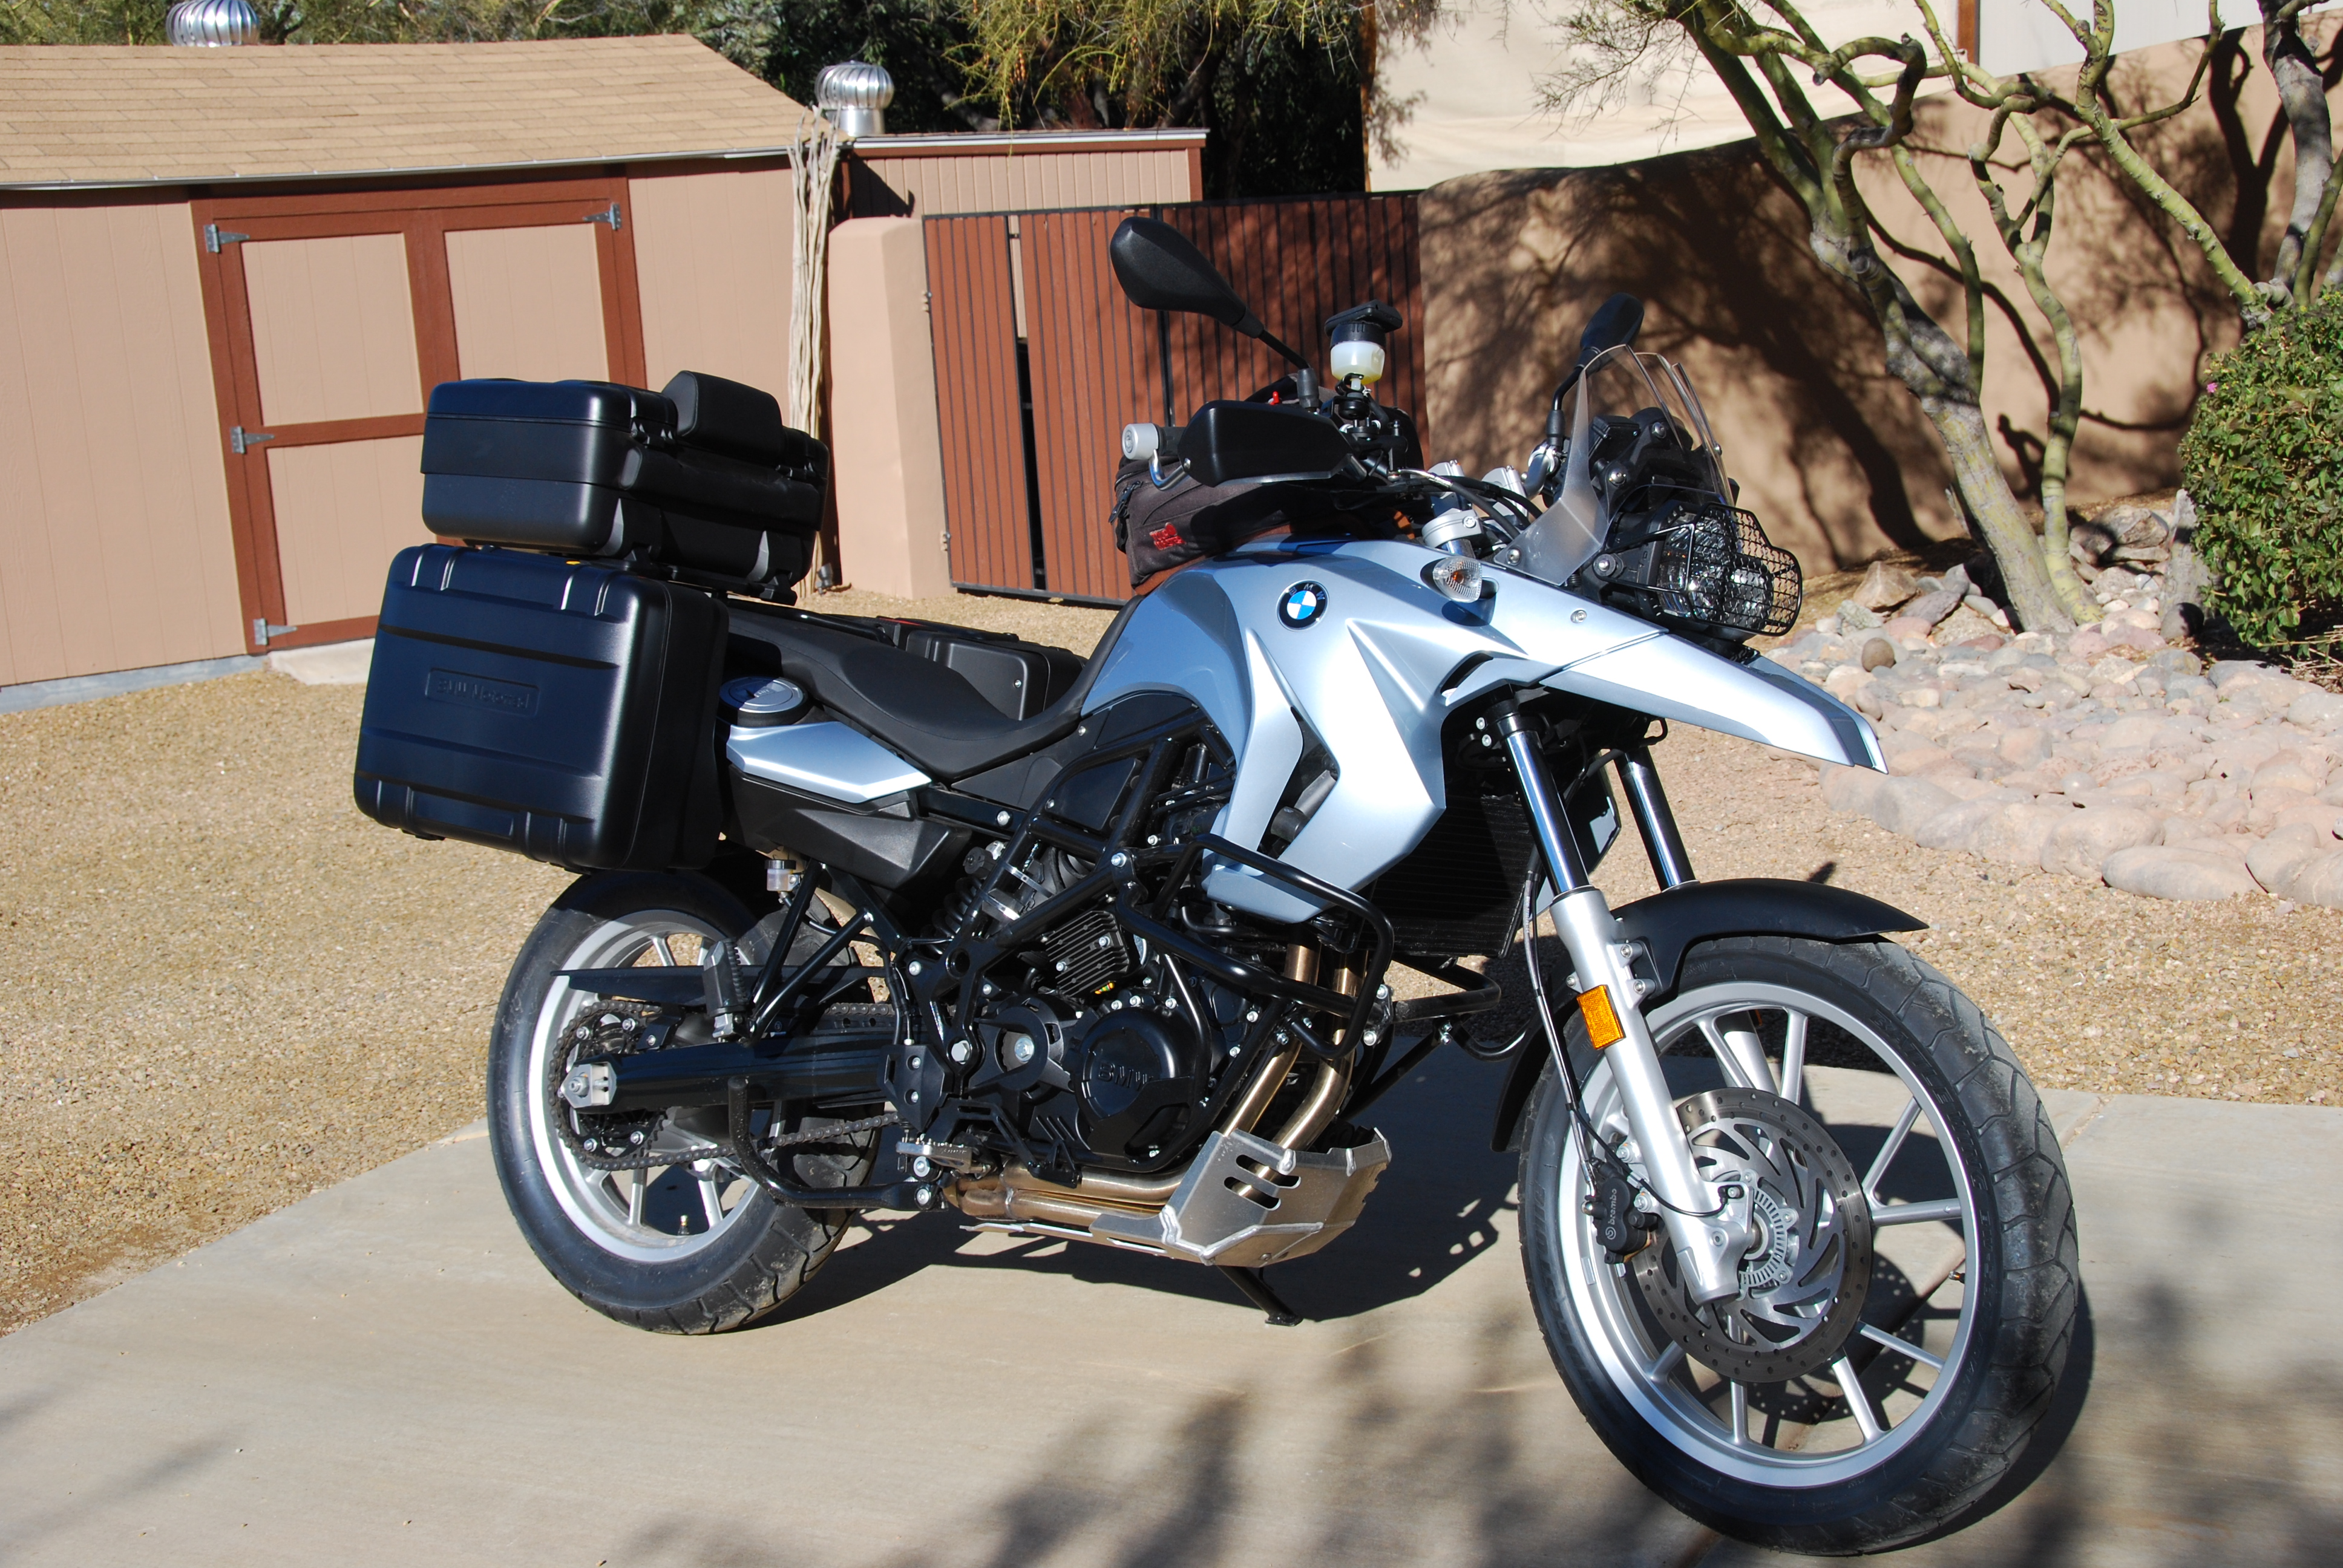 Rifle Classic Windshield Suzuki Savage 650 Boulevard S40 in addition Meet The Xs Part 1 Bmw G650x Challenge Dare You To together with Honda Crf250l Multi Use Pannier Rack besides Build Scrambler Motorcycle as well 351634 Jerky Snatchy Throttle Fix 4. on klr 650 bmw